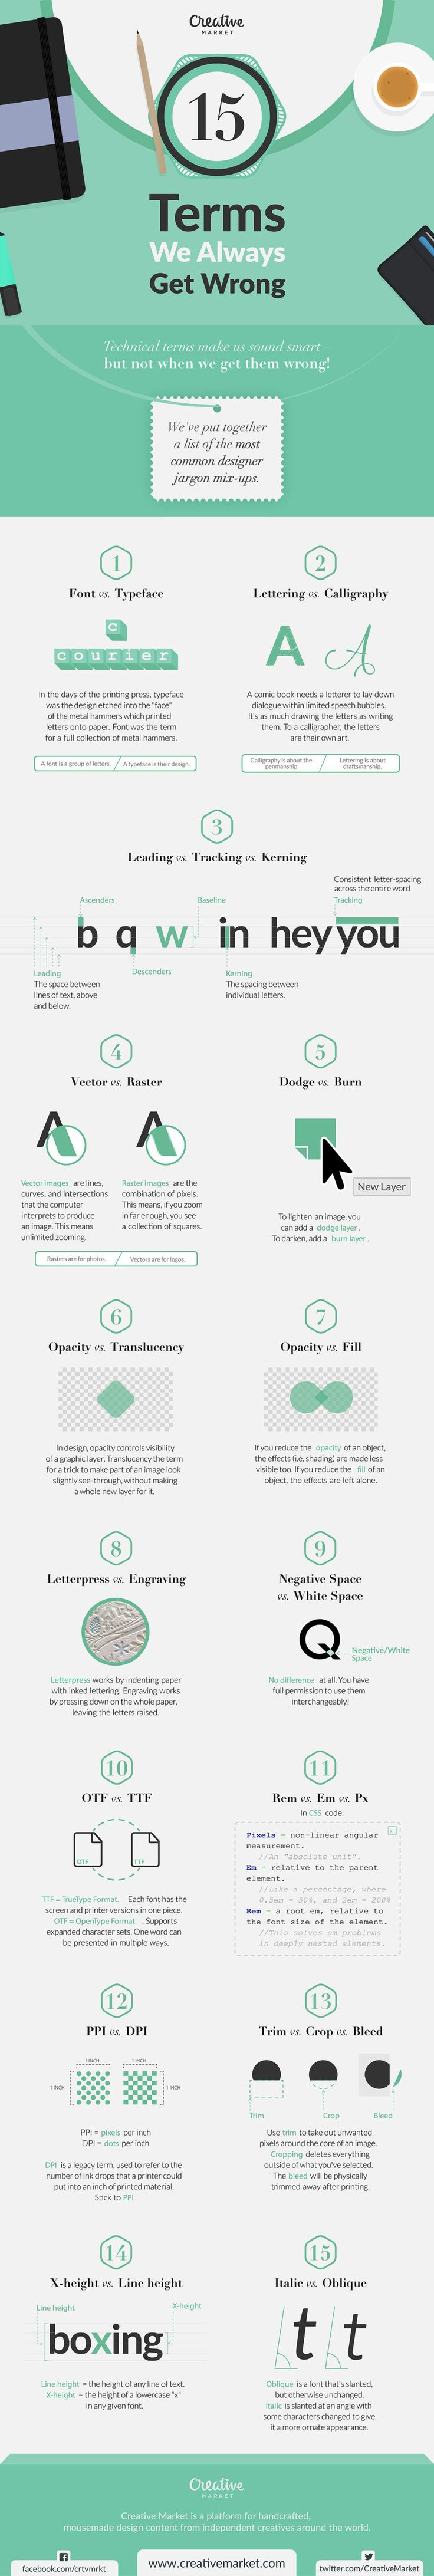 15 of the Most Commonly Misused Design Terms - UltraLinx